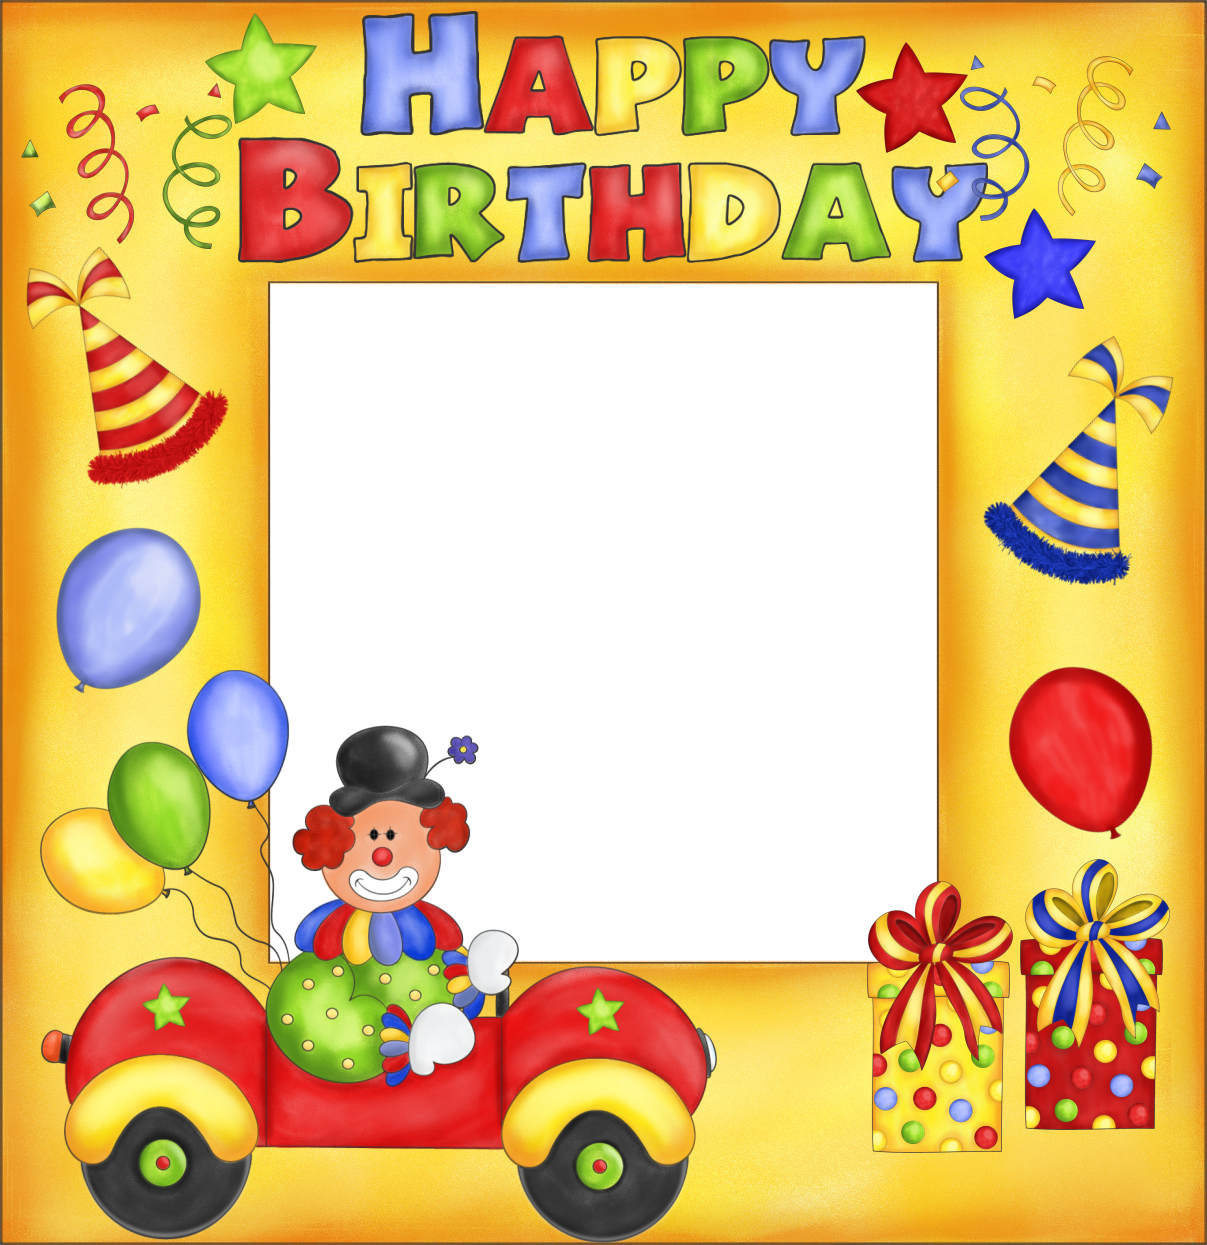 Images of myspace baby. Birthday clipart picture frame